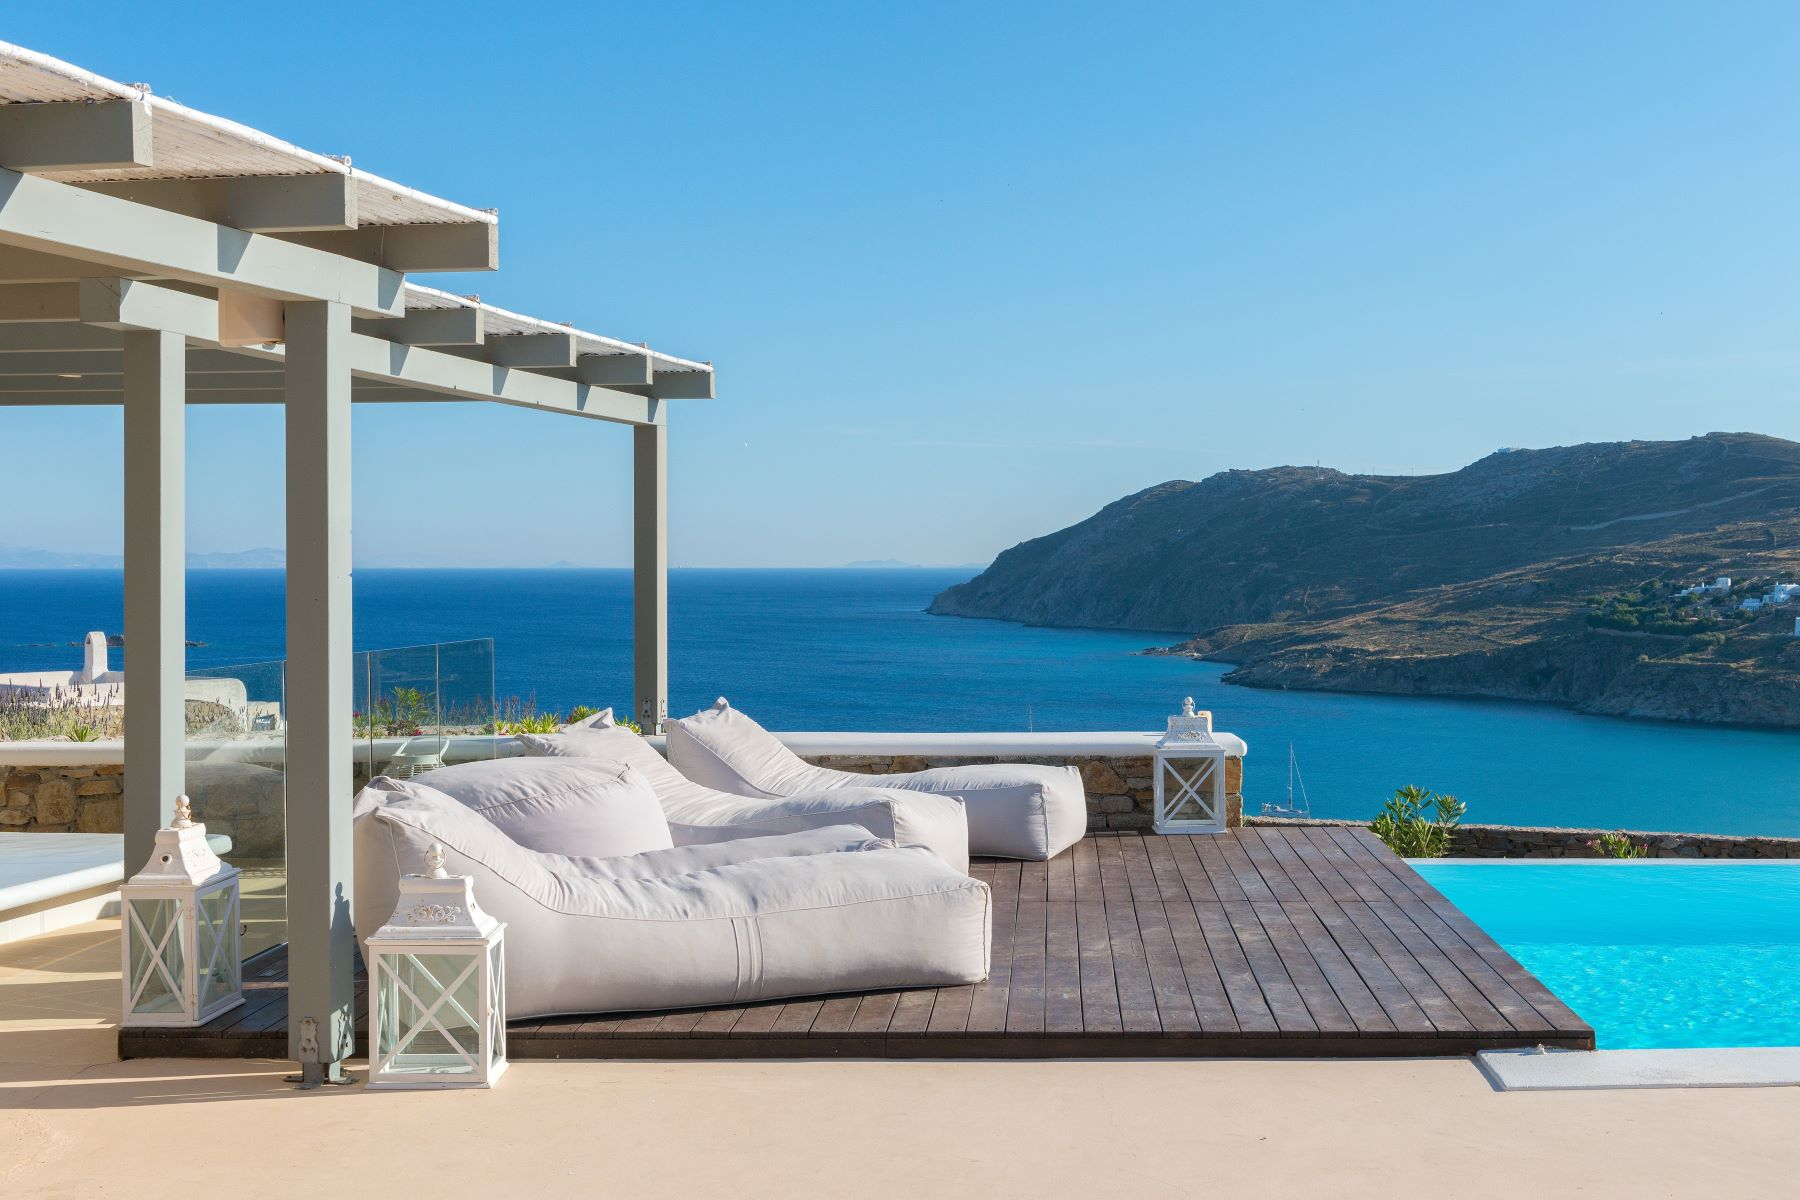 Single Family Home for Sale at Celestial Mykonos, Southern Aegean, Greece